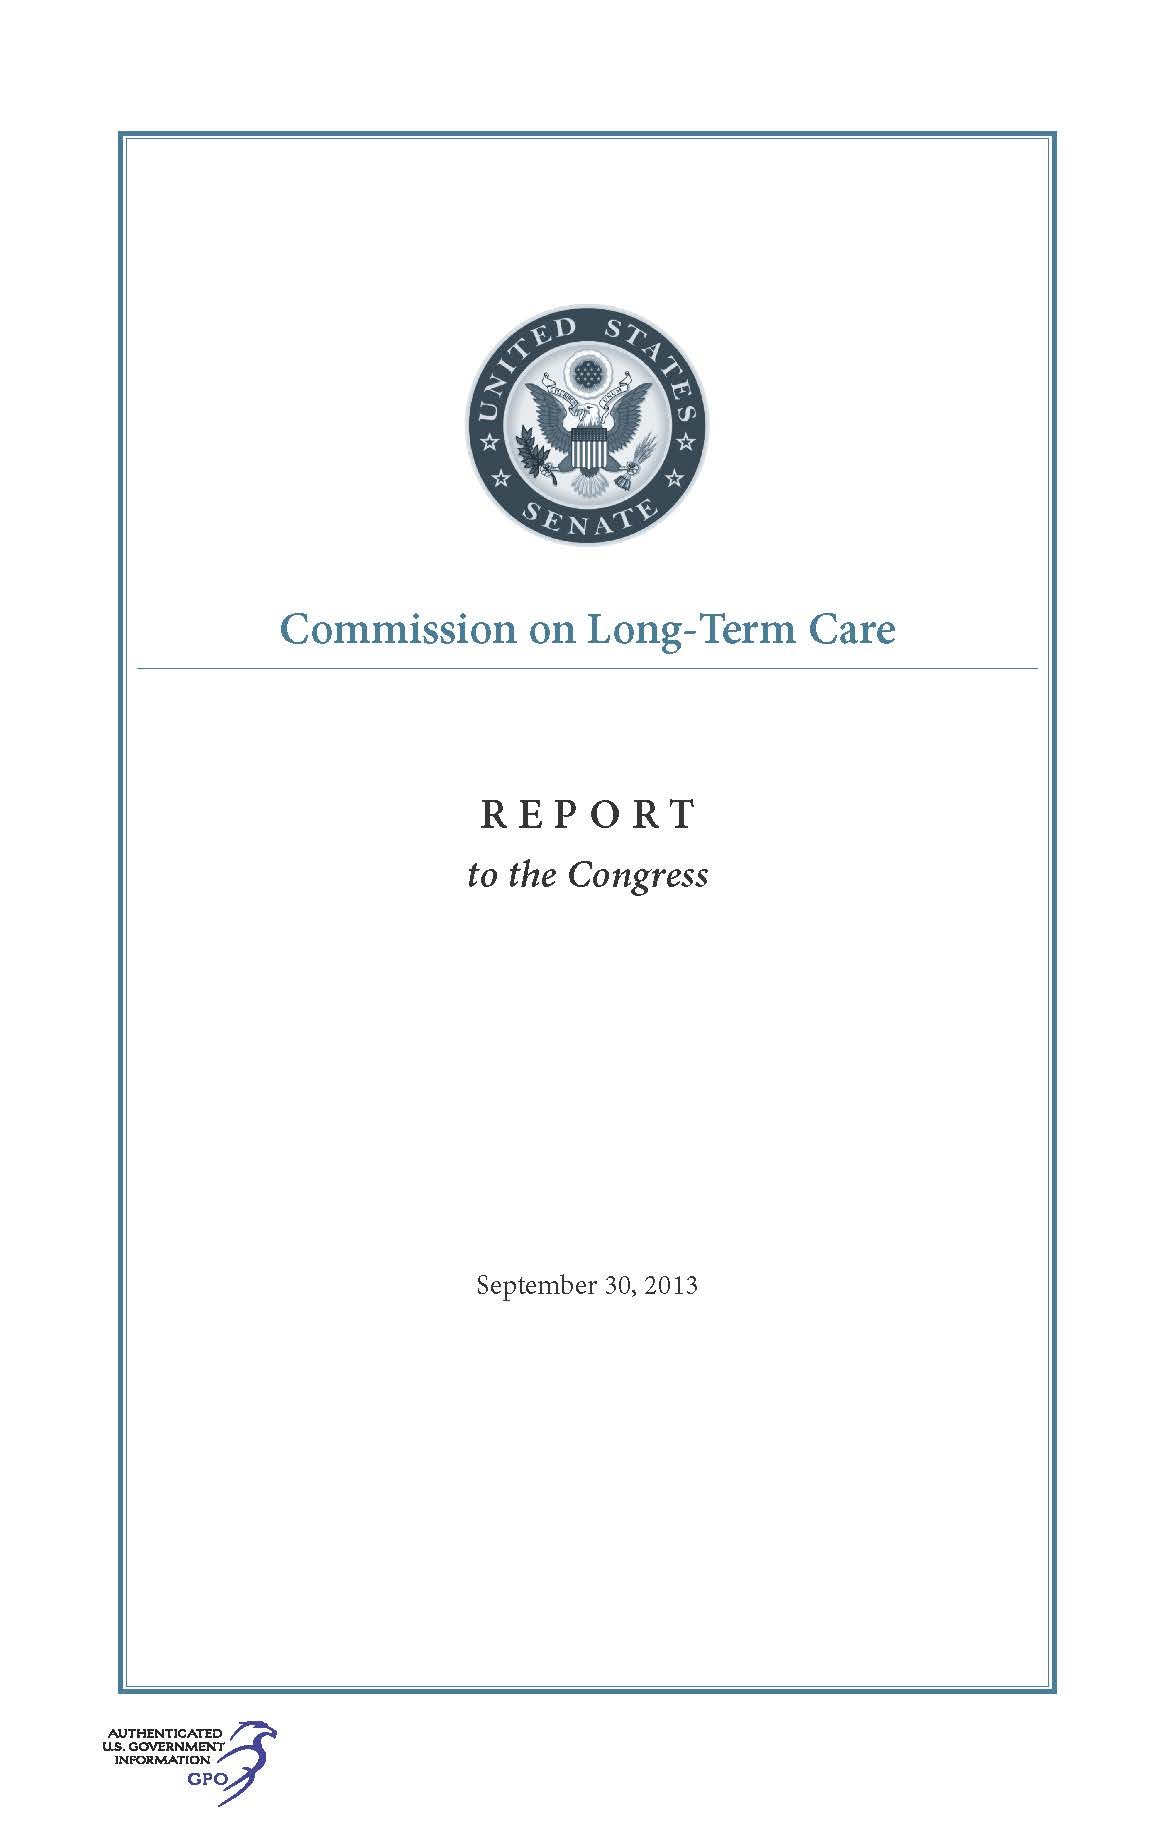 2013 government book talk commission on long term care final report from 2013 available from gpo gov